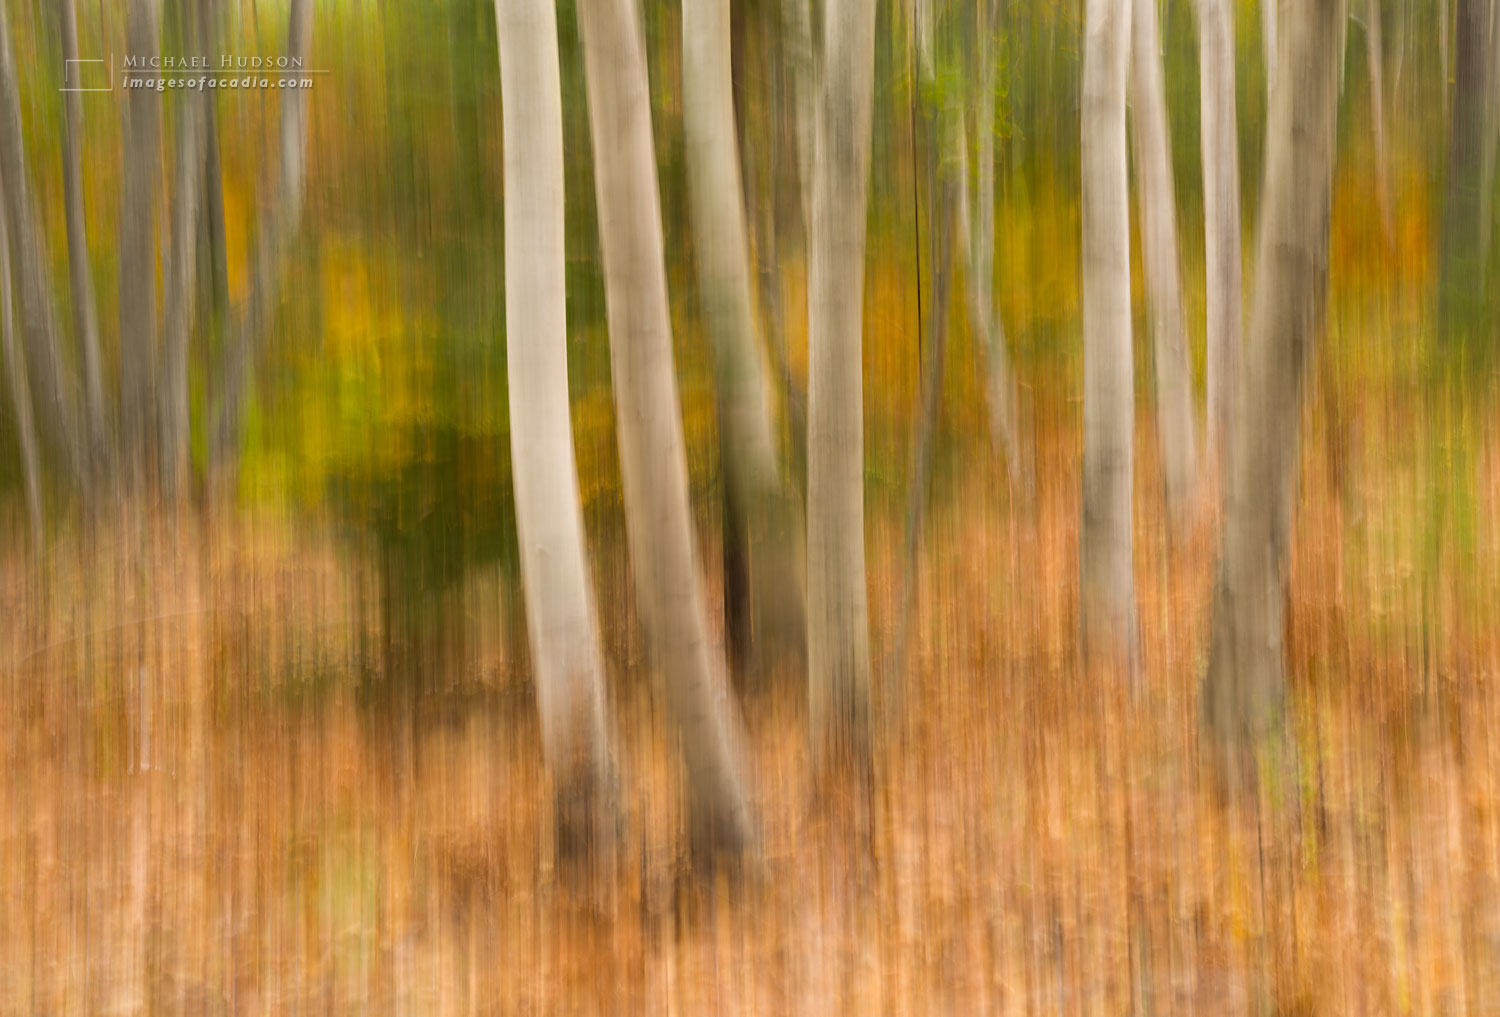 Birch trees, Acadia National Park, Maine, USA